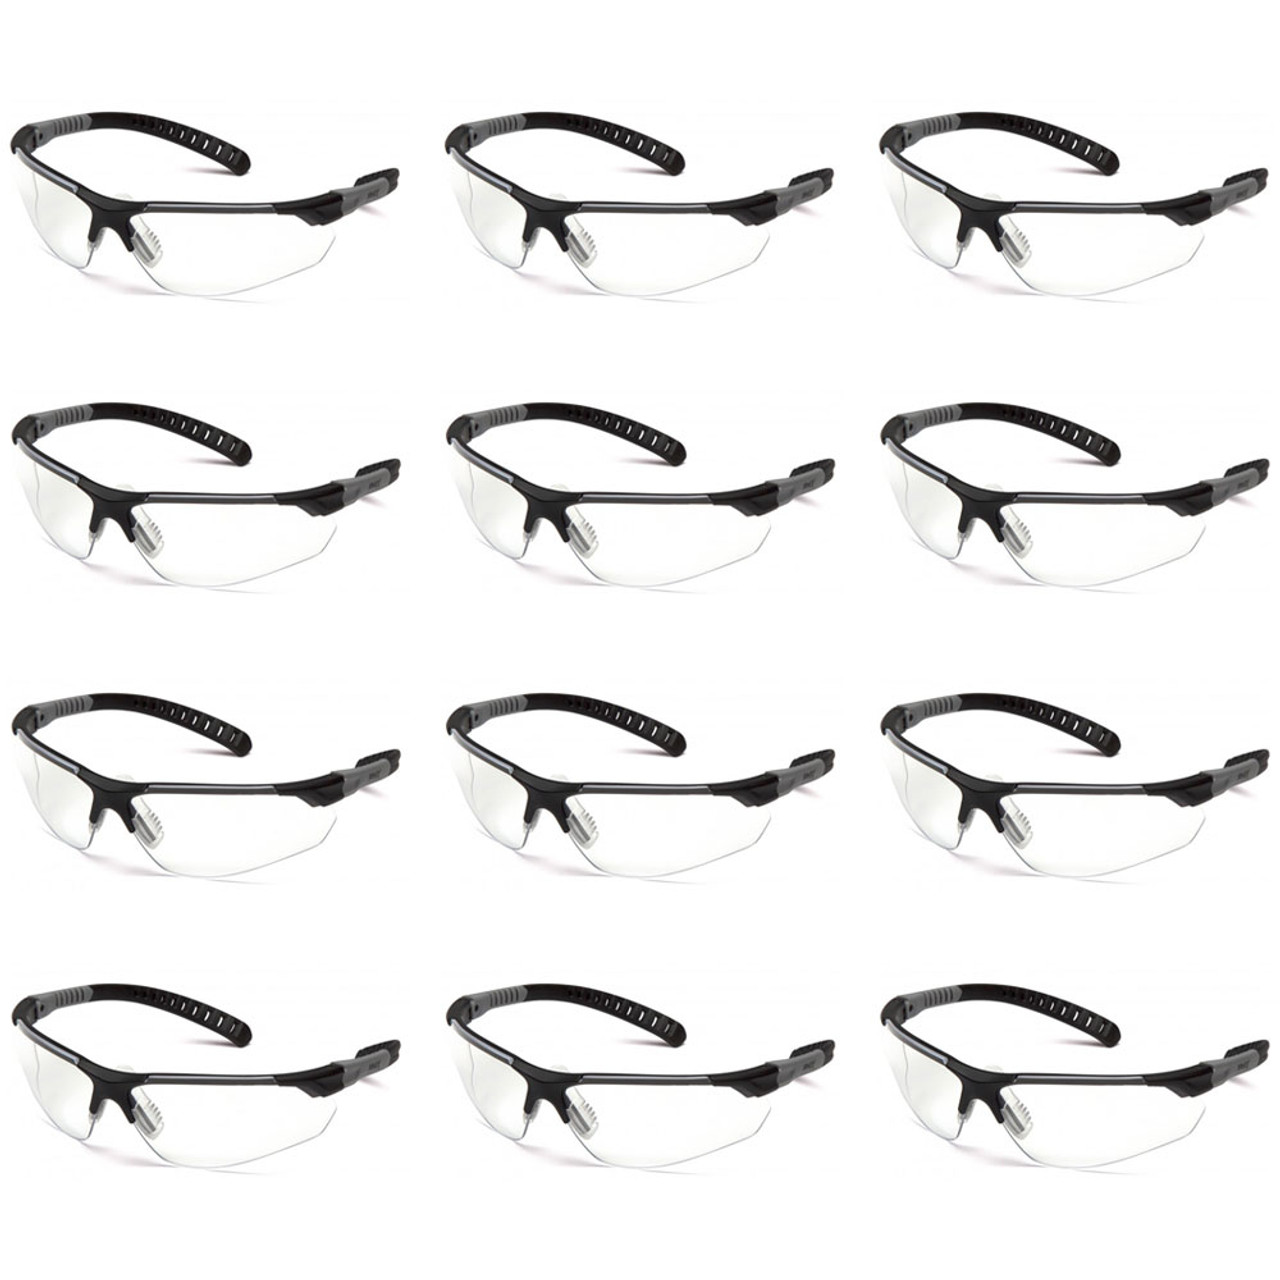 Pyramex Sitecore Series Safety Glasses with Clear Lens, 12 Pack